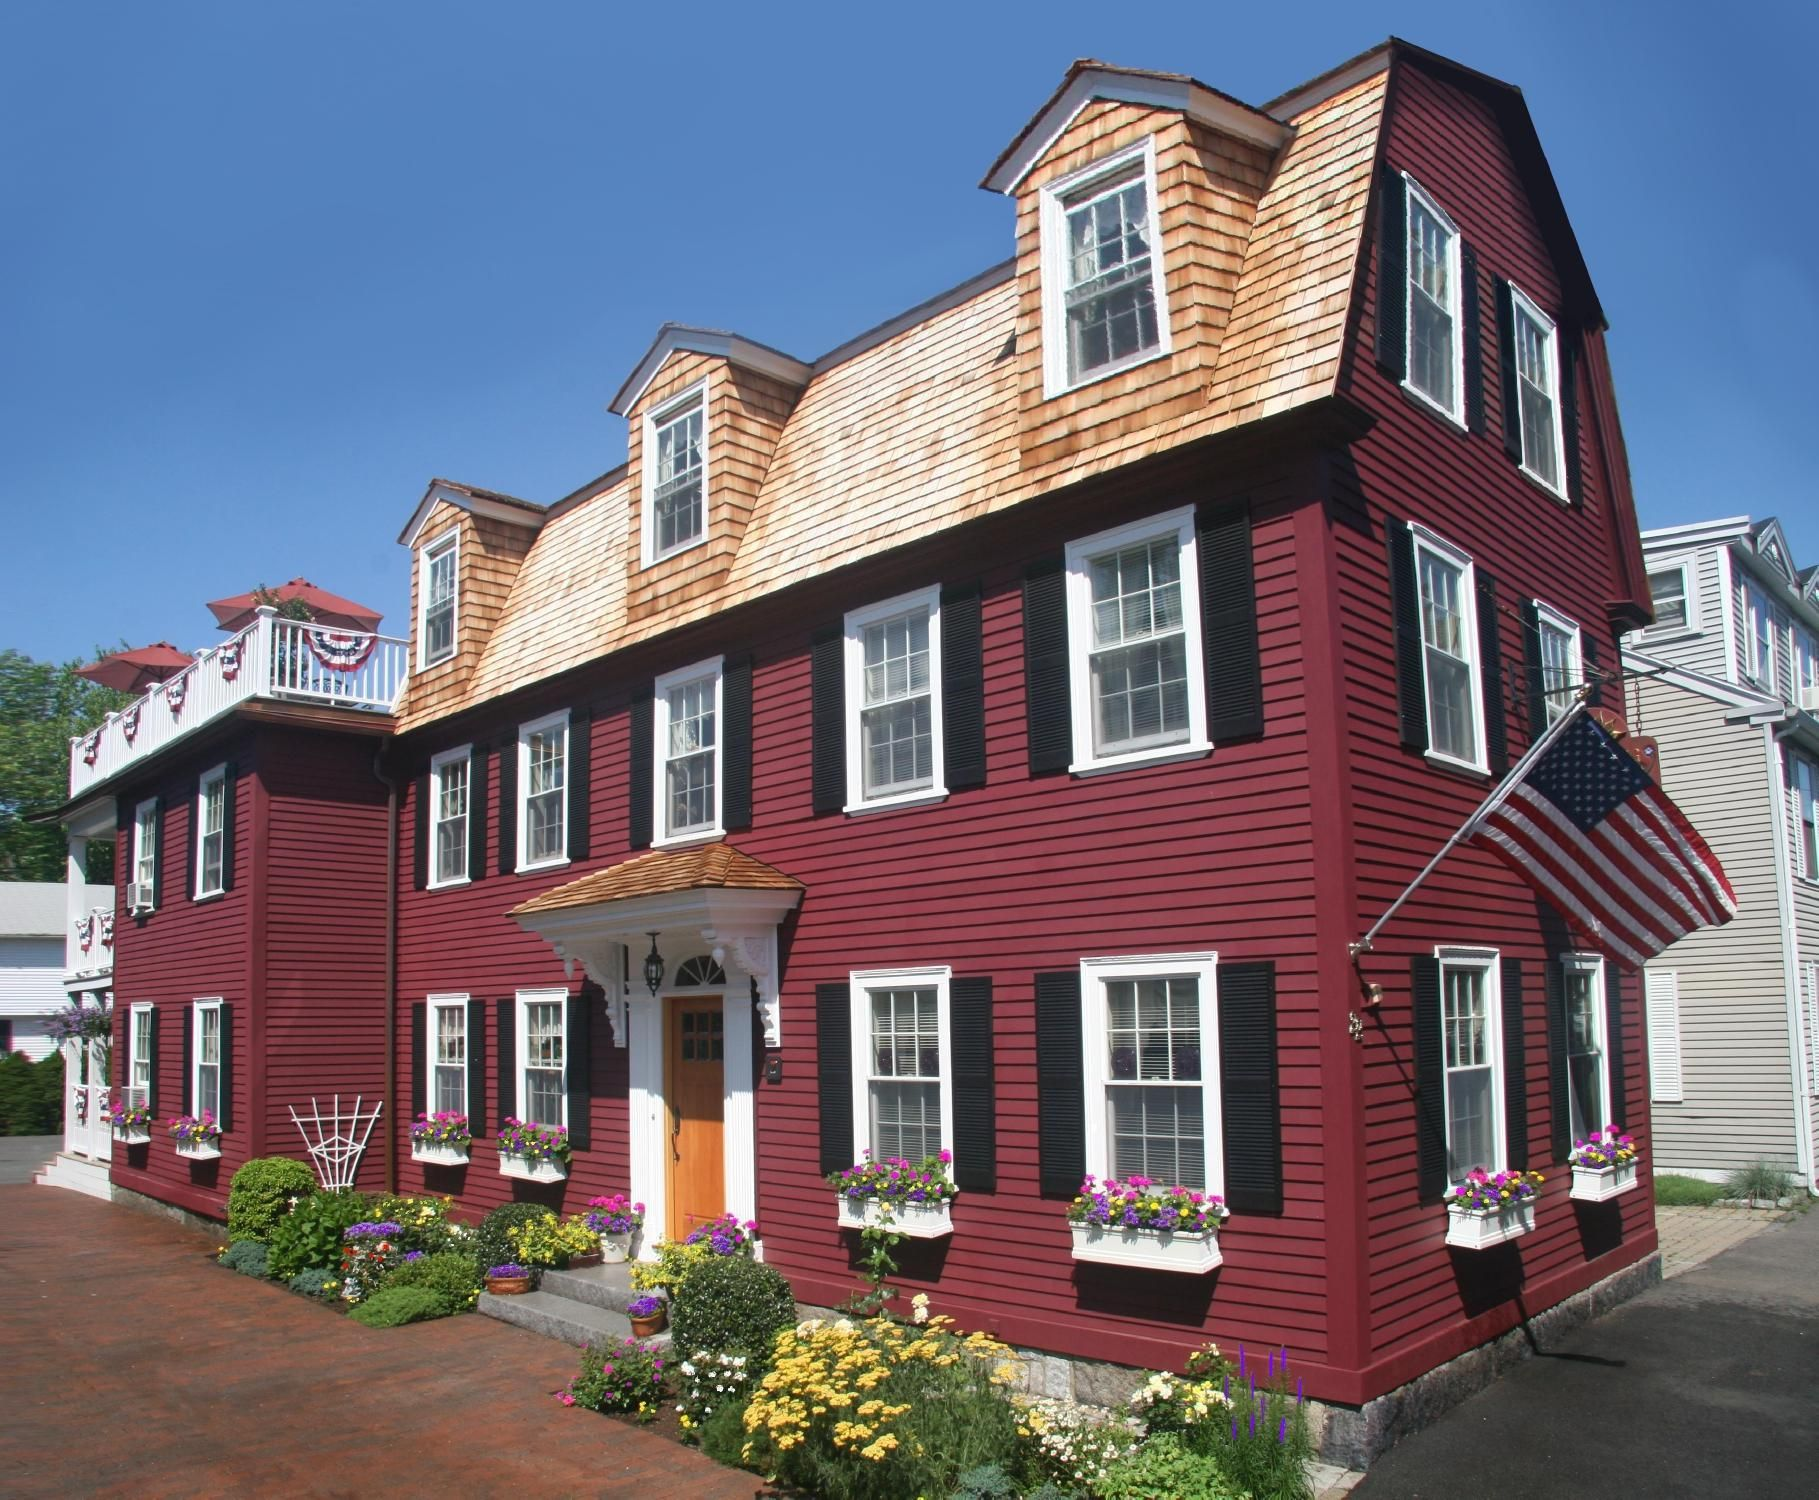 Morning Glory Bed & Breakfast UPDATED 2017 B&B Reviews